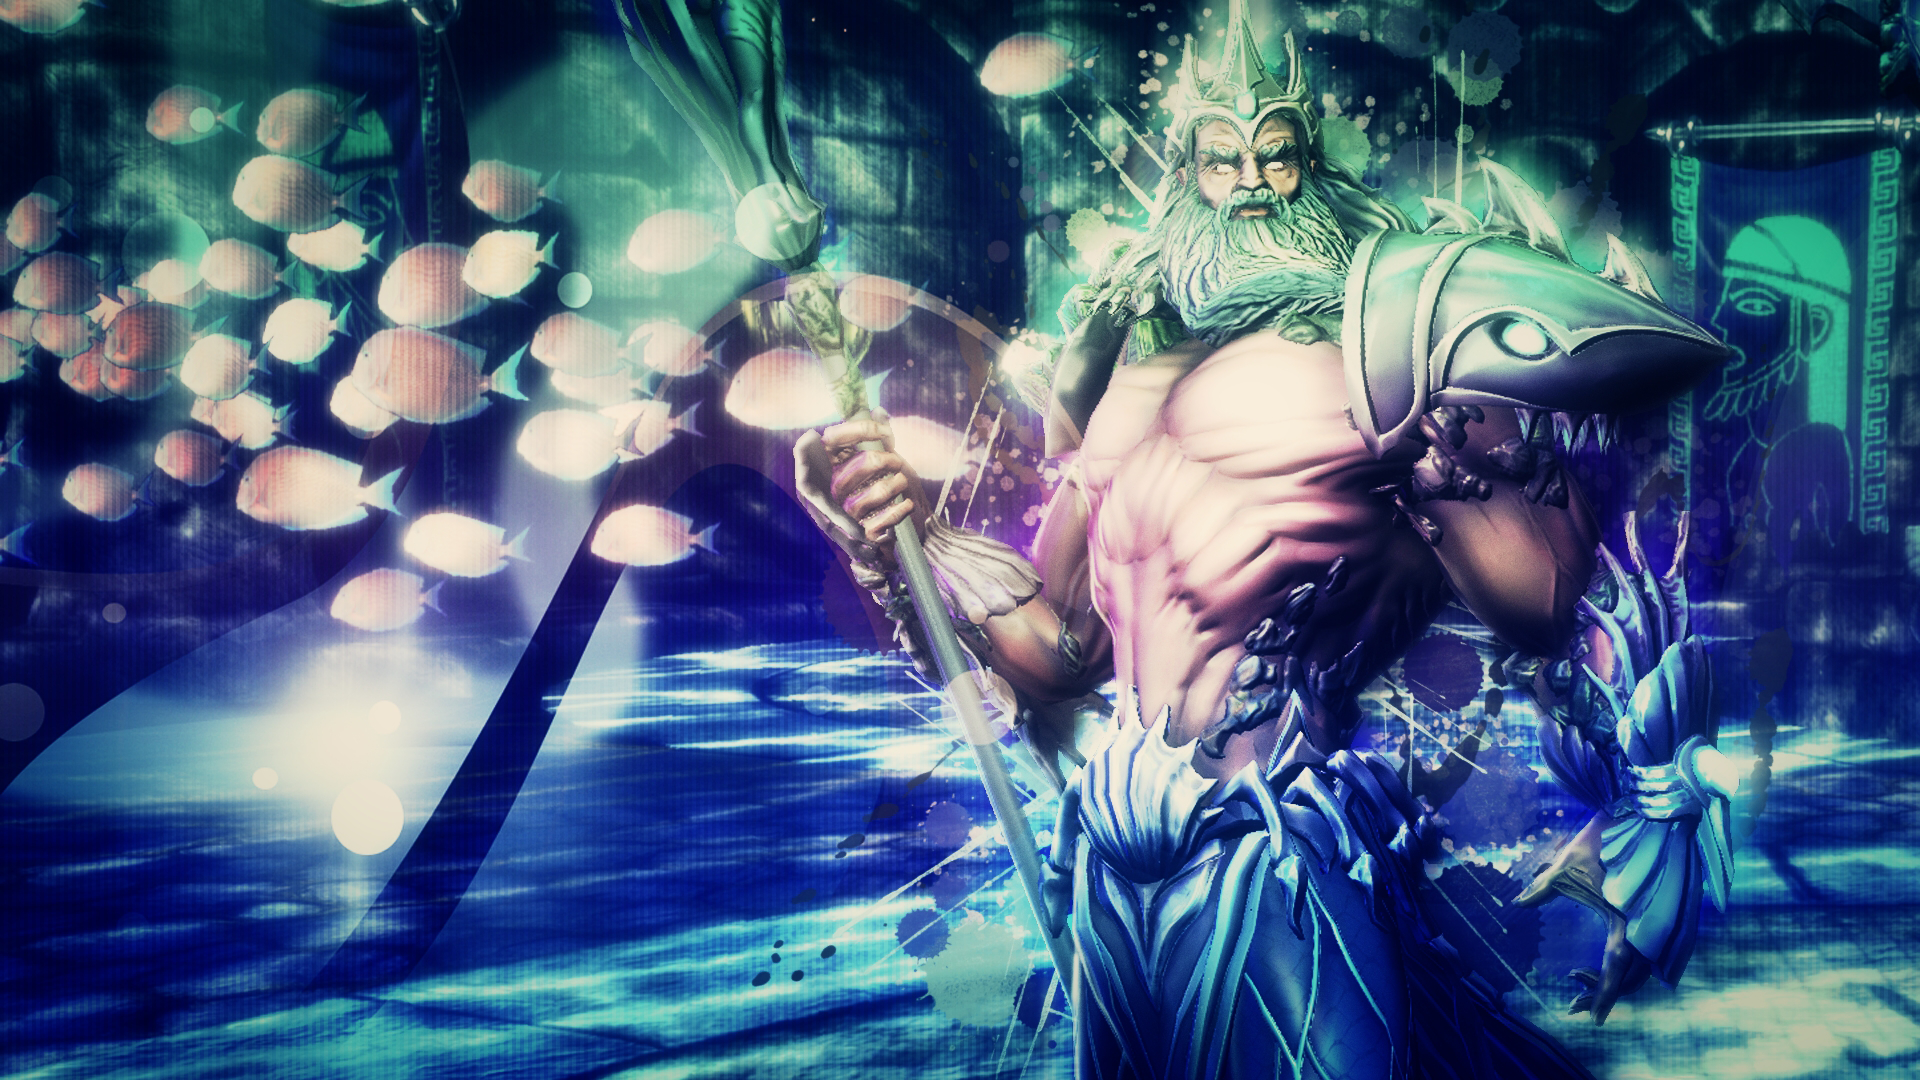 poseidon god of the oceans smite wallpaper by getsukeii on